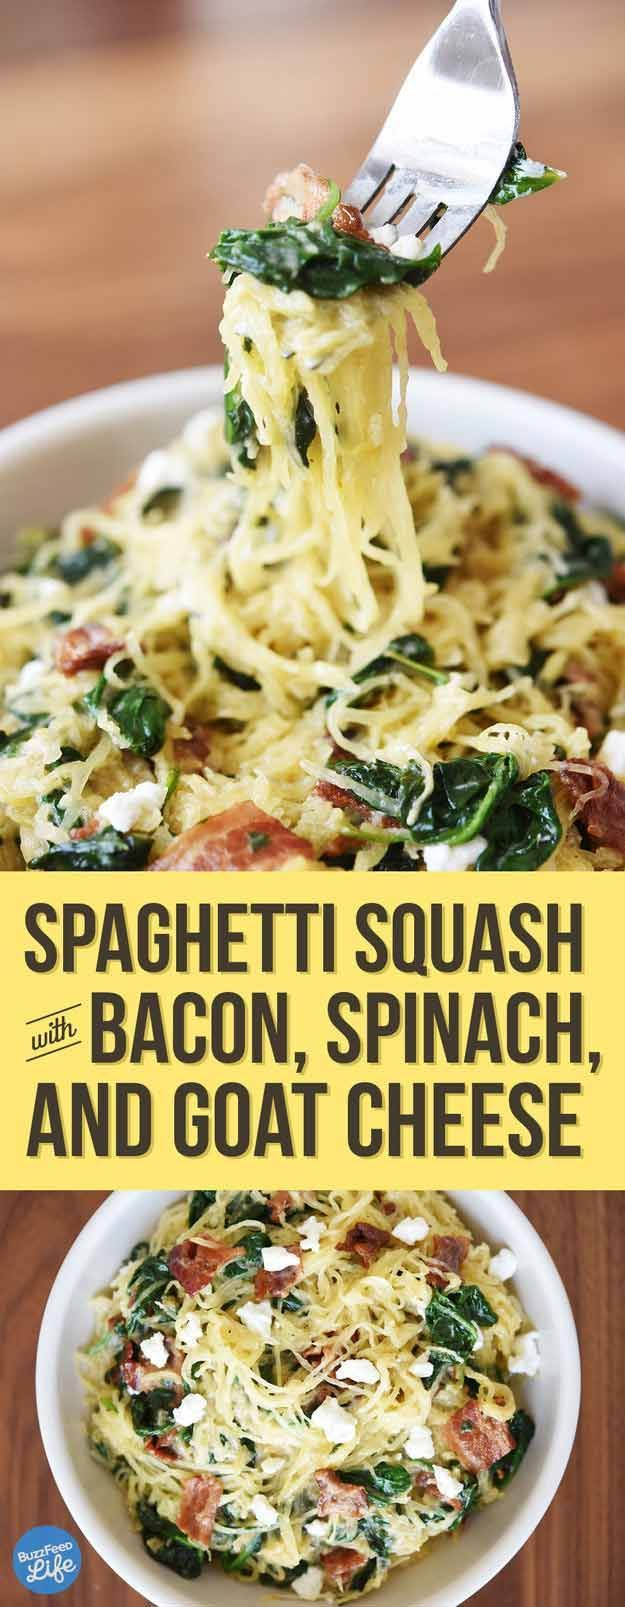 Spaghetti Squash with Bacon, Spinach & Goat Cheese | A Homesteader's Guide to Squash Recipes | Healthy And Delicious Homemade Recipes by Pioneer Settler at http://pioneersettler.com/homesteaders-guide-squash-recipes/